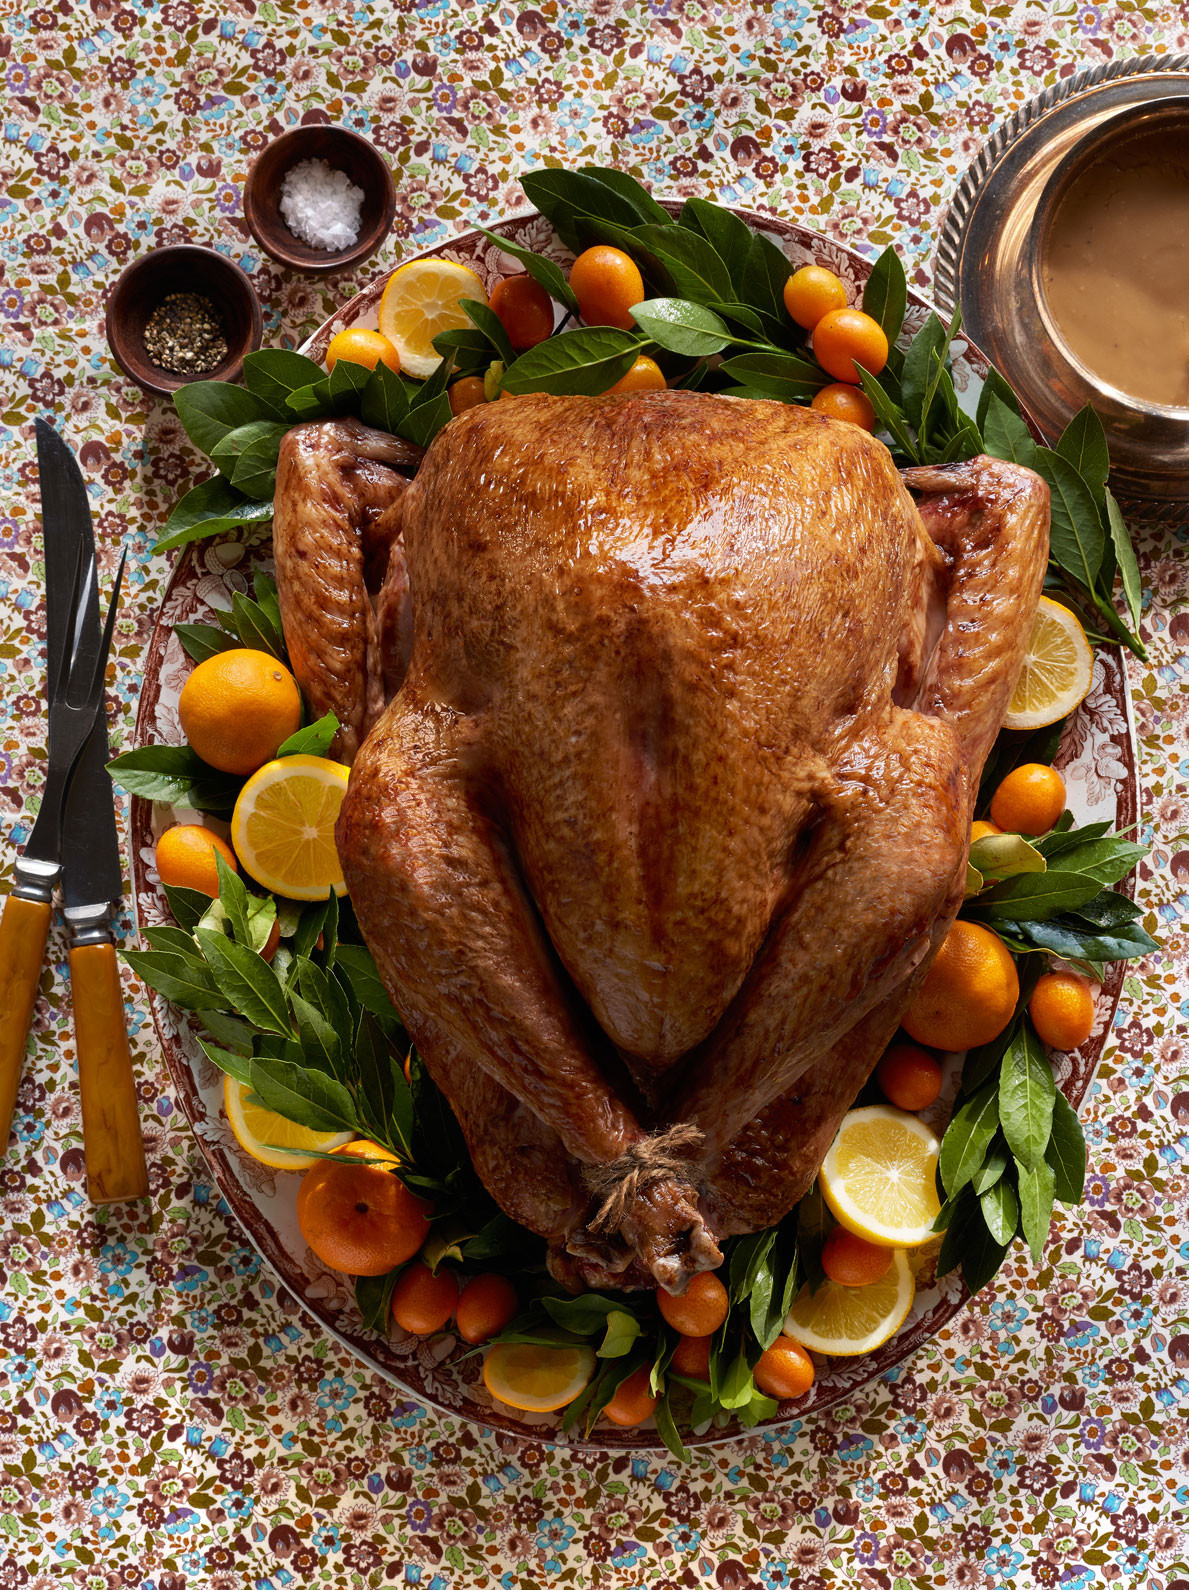 Pics Of Thanksgiving Turkey  25 Best Thanksgiving Turkey Recipes How To Cook Turkey